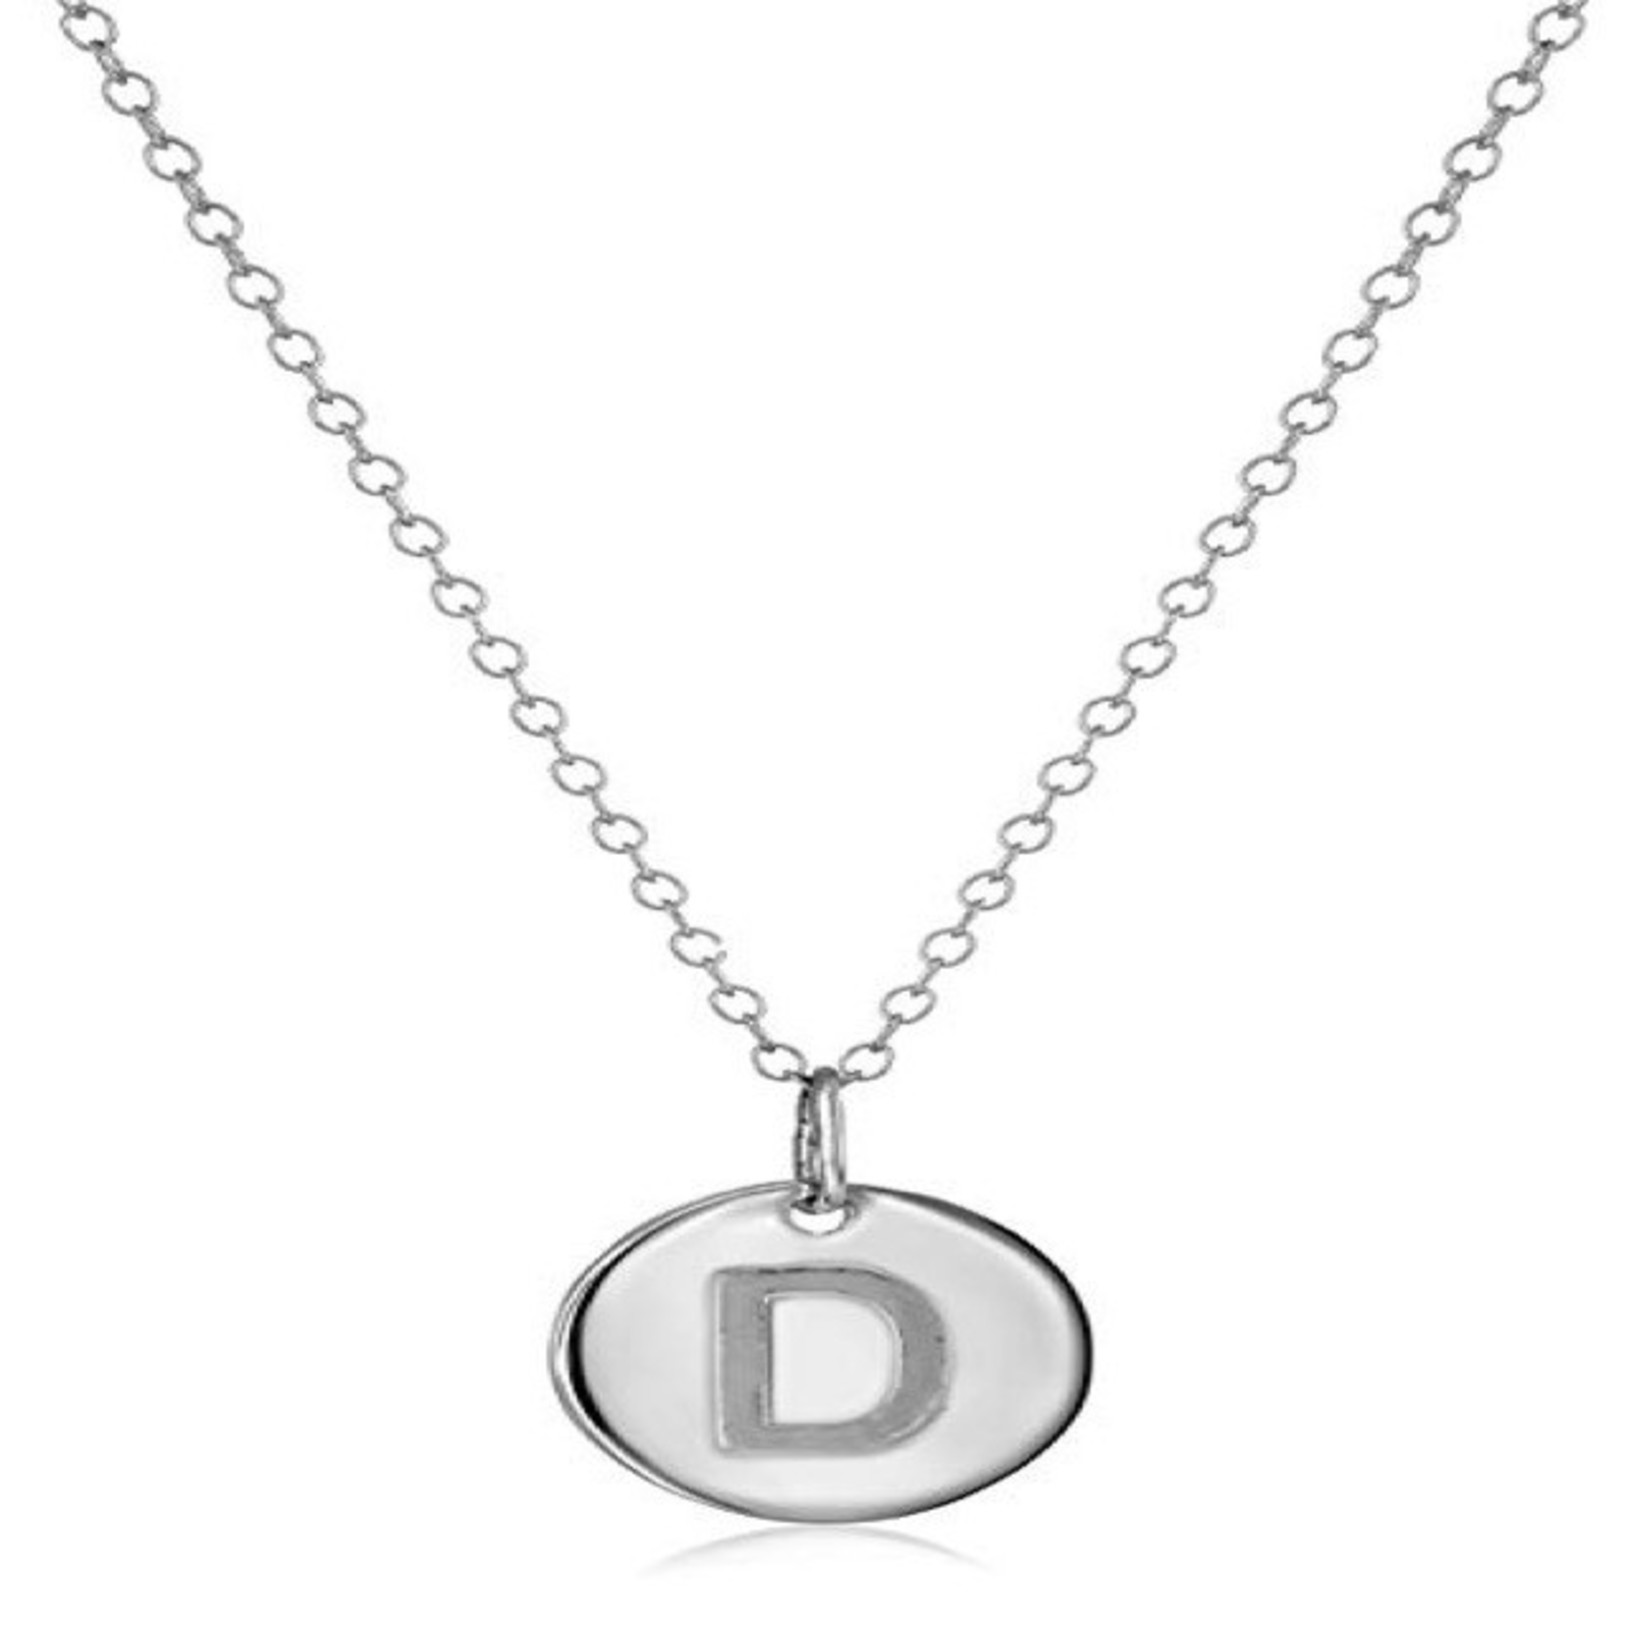 Necklace - Dainty Disc W/ Initial (Silver) (D)